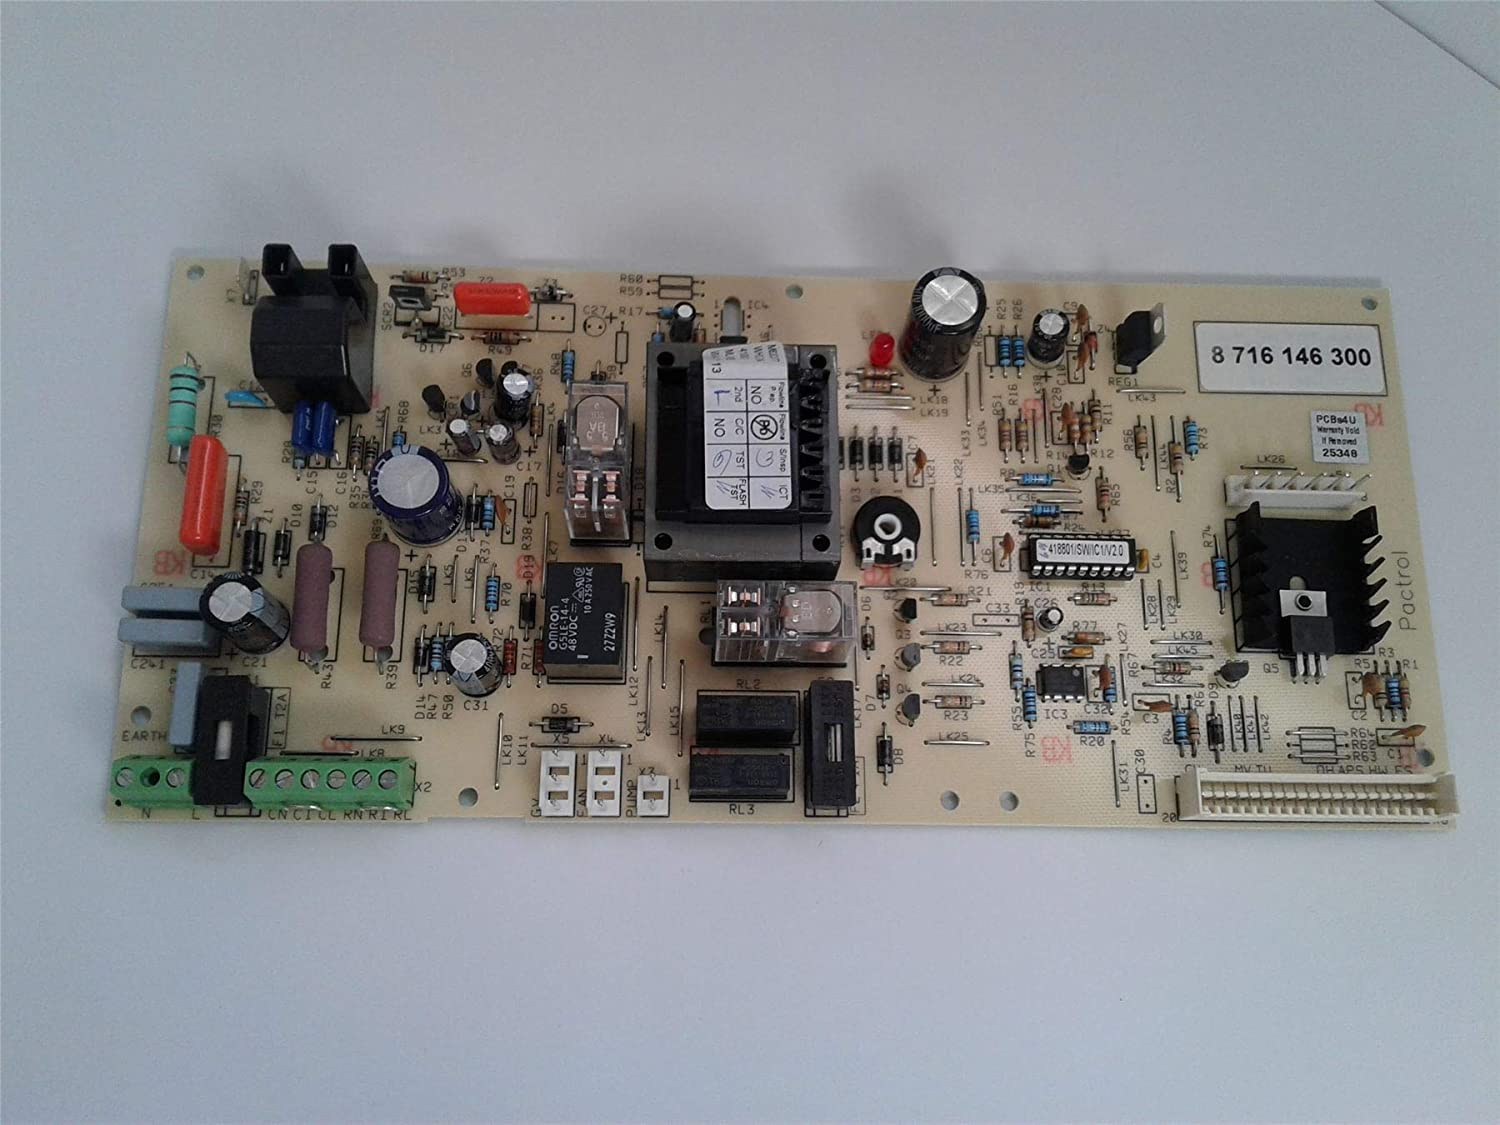 Worcester 24I RSF Control PCB Printed Circuit Board 87161463000